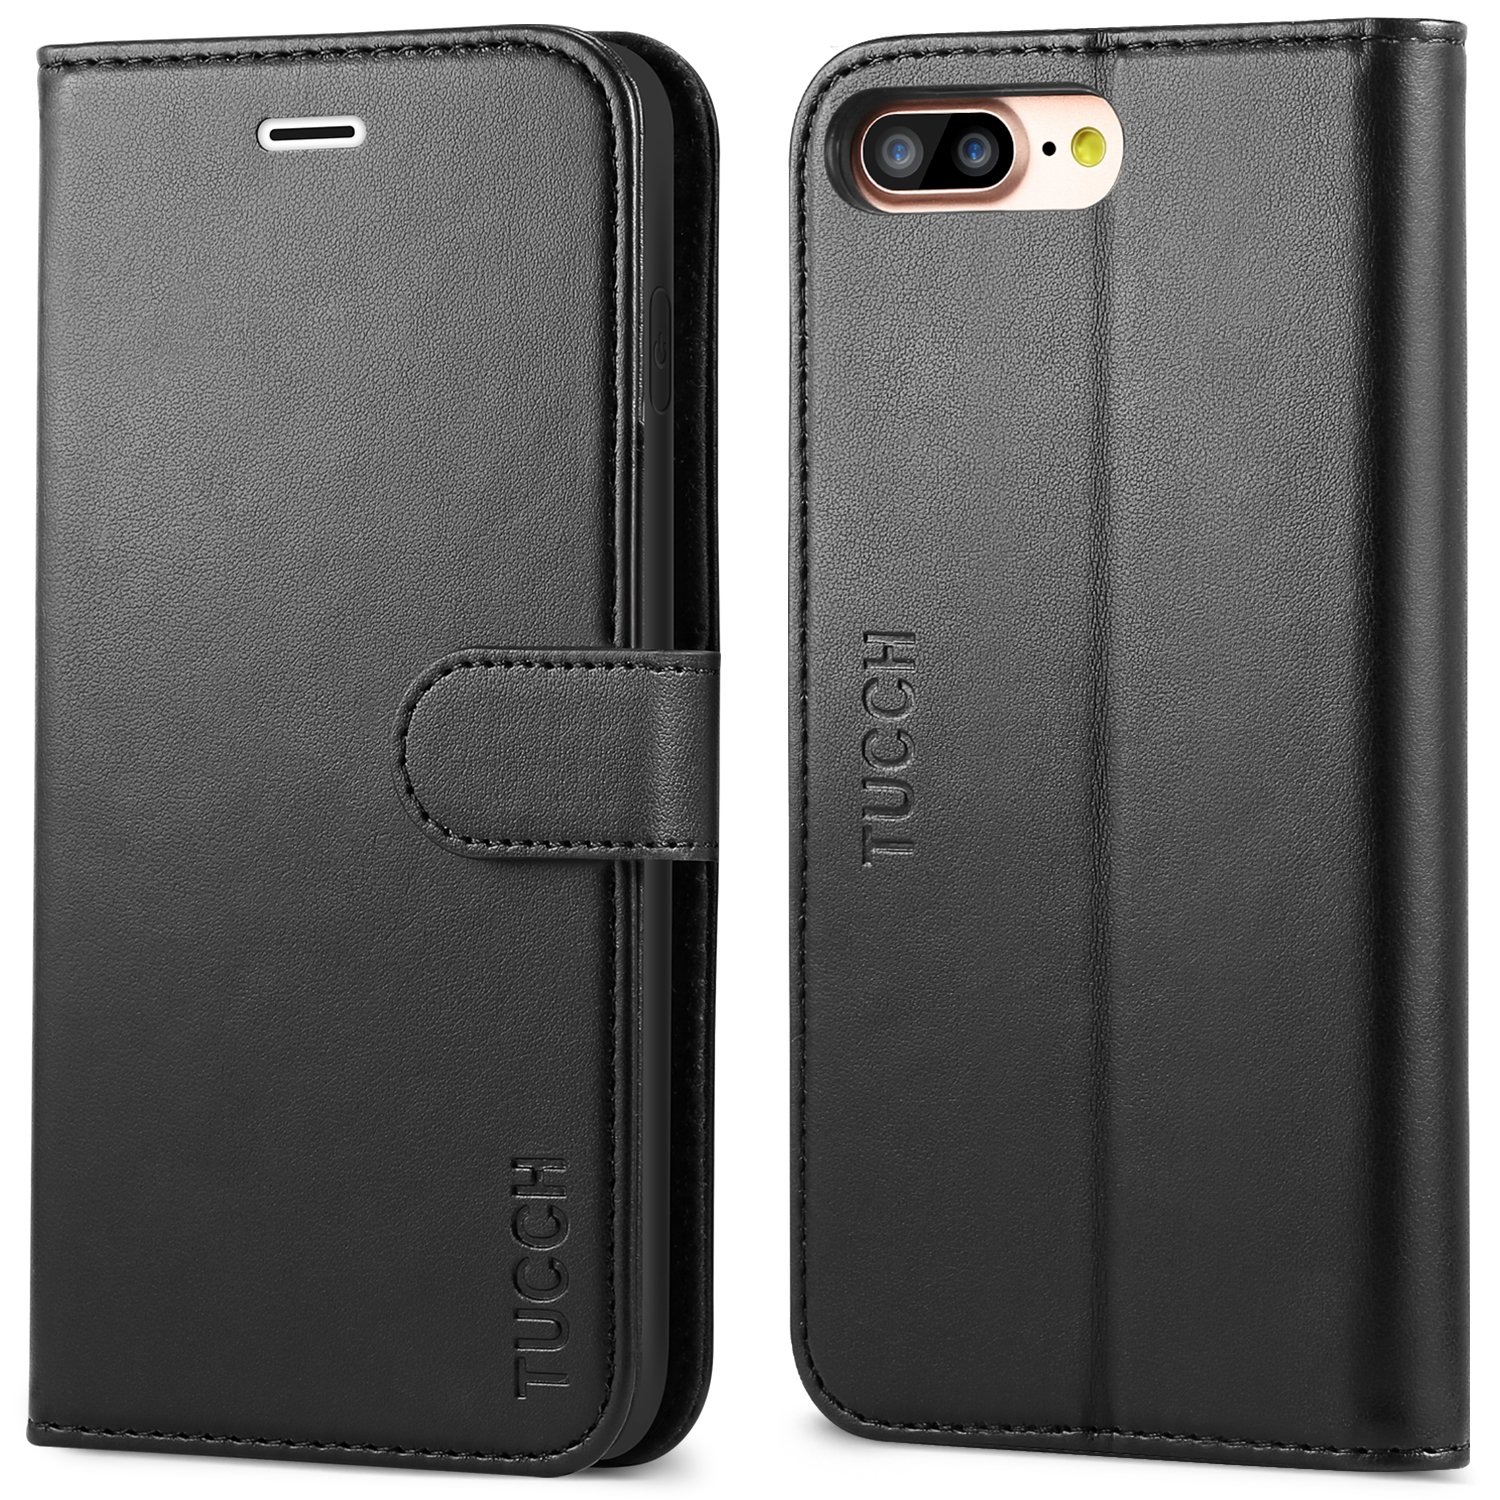 iPhone 8 Plus Wallet Case, iPhone 7 Plus Case, TUCCH Premium PU Leather Flip Folio Case with Card Slot, Cash Clip, Stand Holder and Magnetic Closure [TPU Shockproof Interior Protective Case], Black by TUCCH (Image #10)